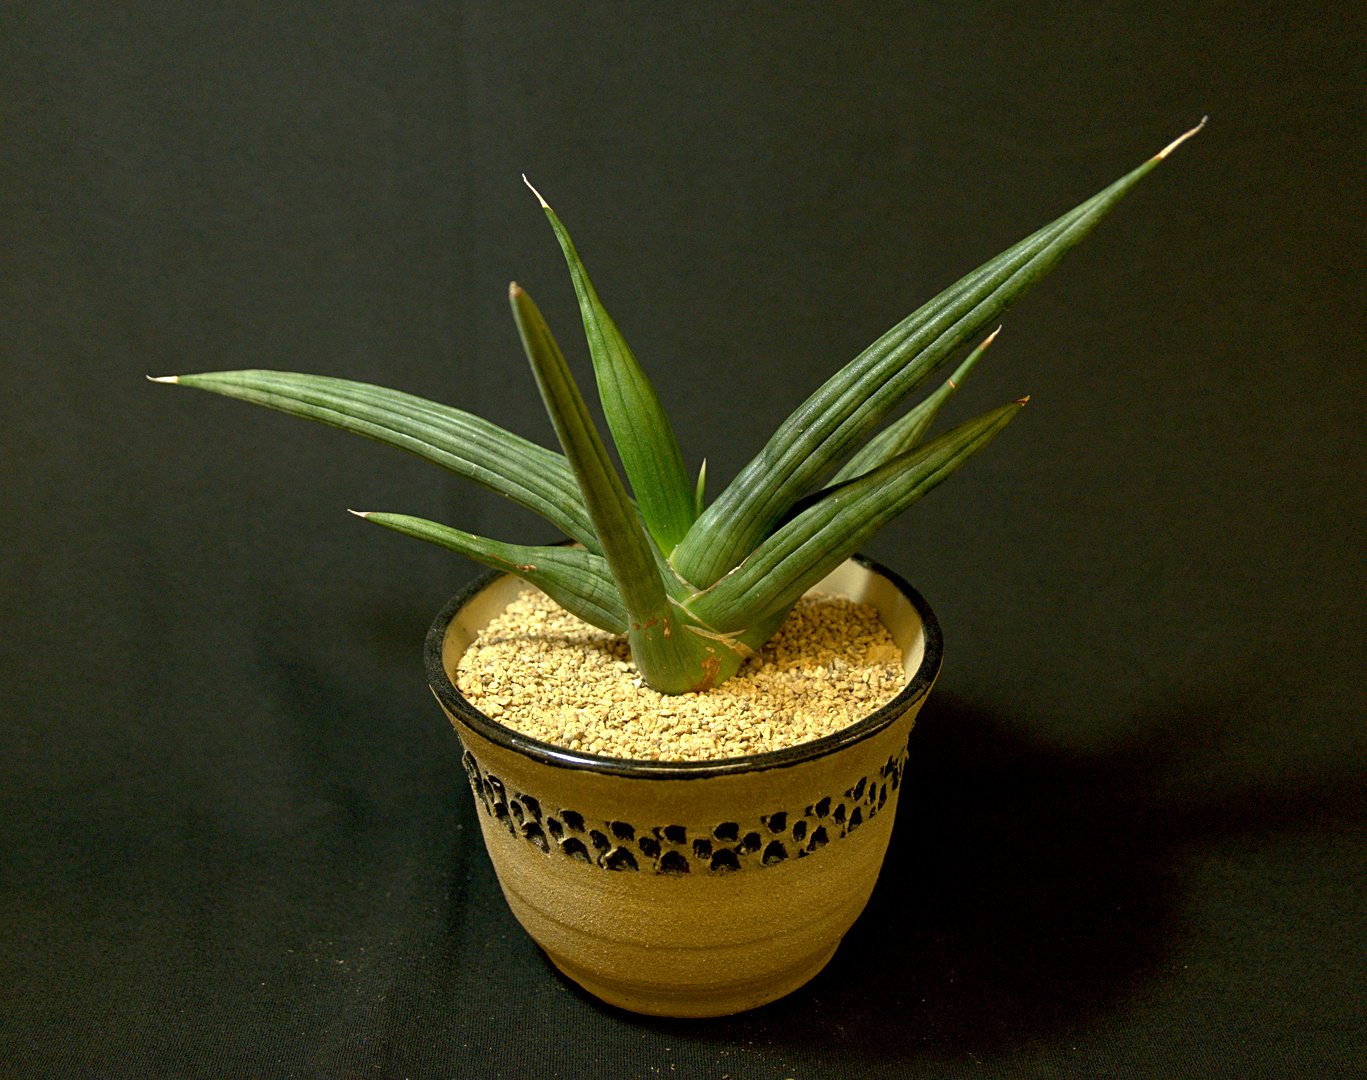 SCCSS 2018 July - Winner Intermediate Succulent - Sally Fasteau - Sansevieria 'Ed Eby'